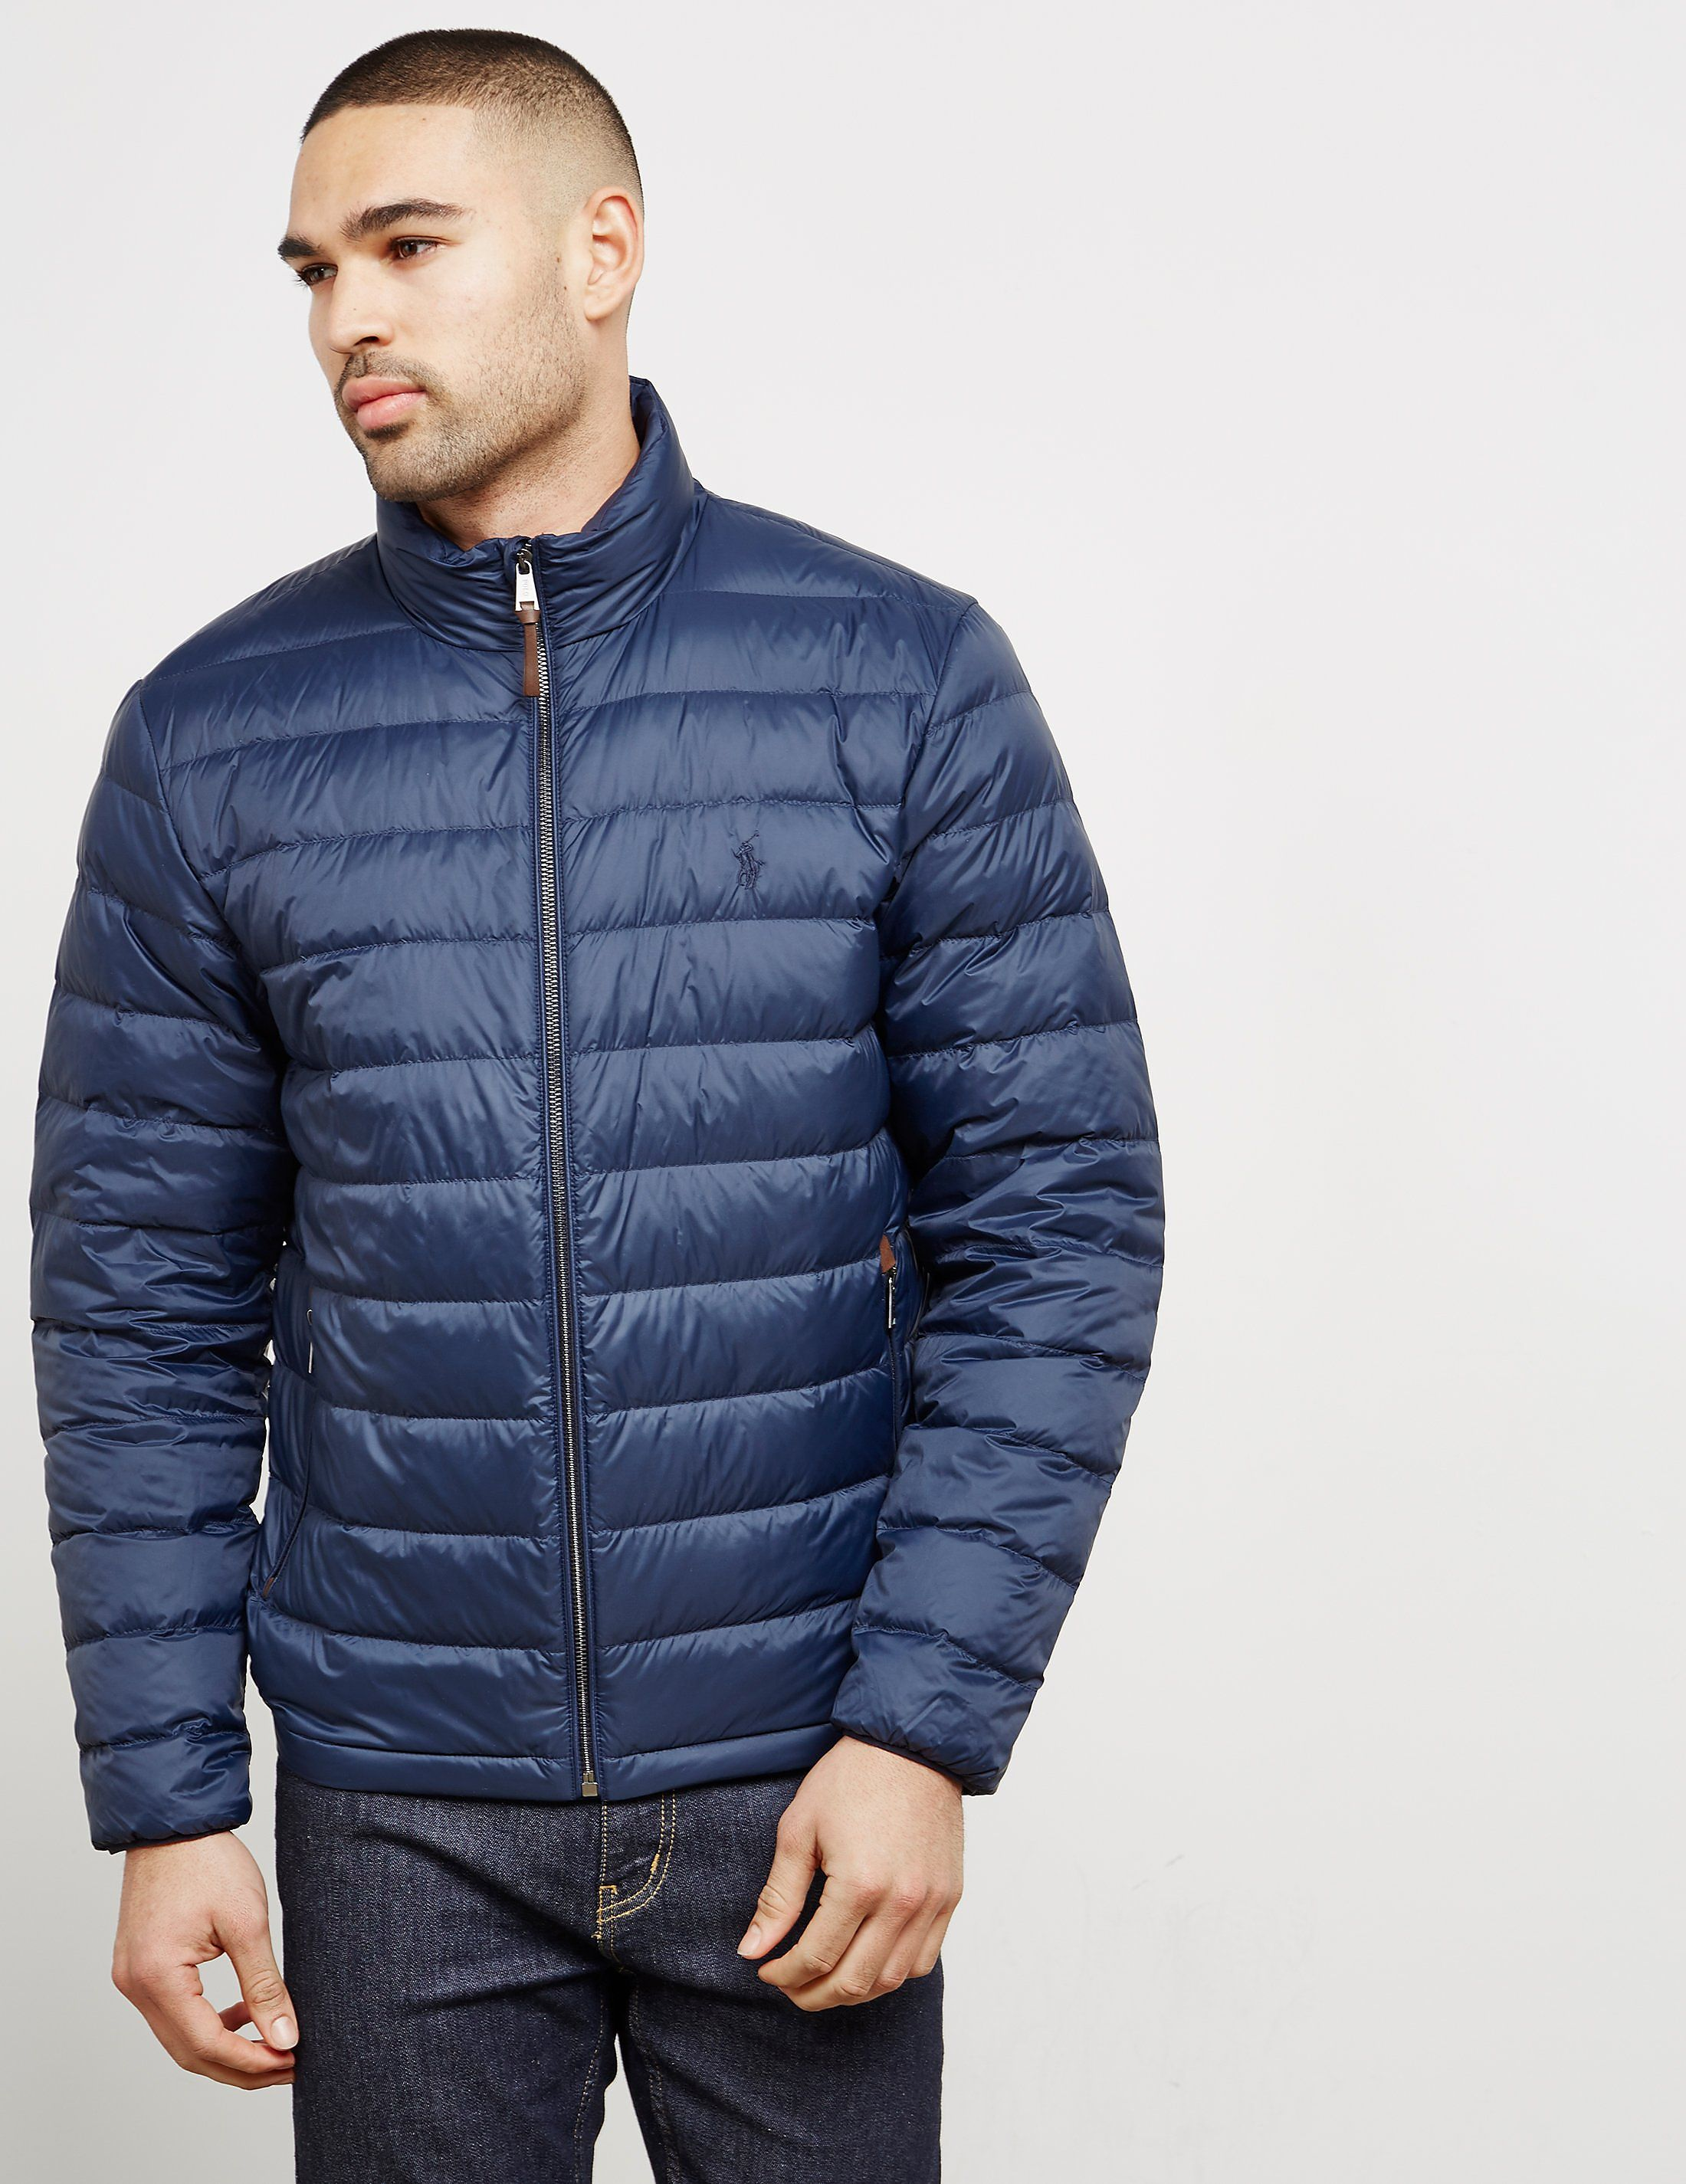 illegal your make own quilted it product band to bomber polo jacket ralph normal mens lauren quilt is red